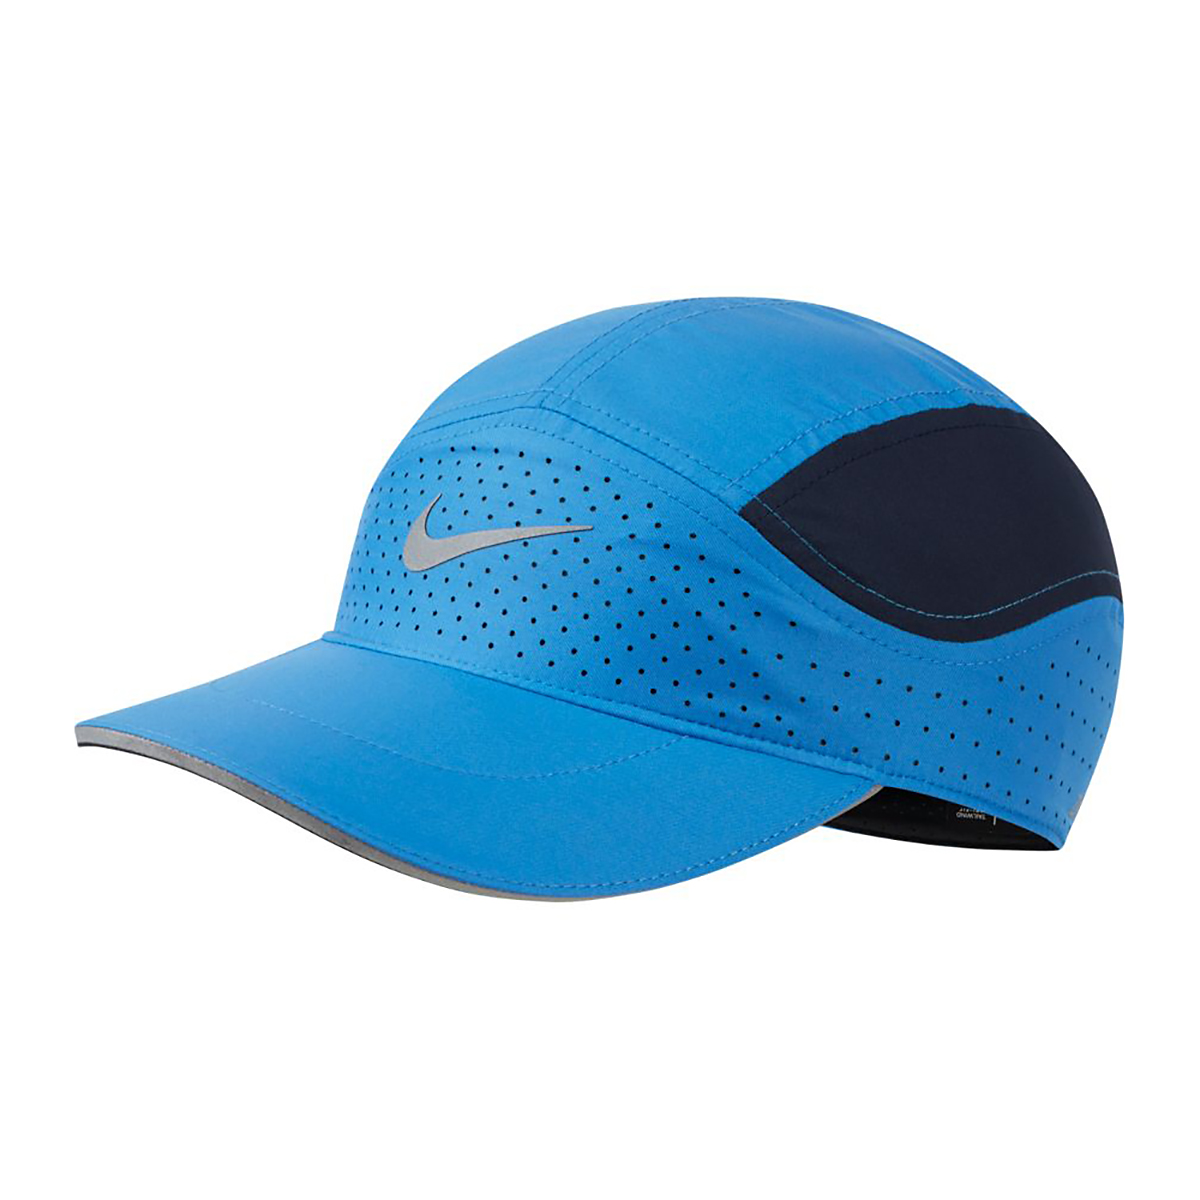 Nike AeroBill Tailwind Running Cap - Color: Blue, Blue, large, image 1